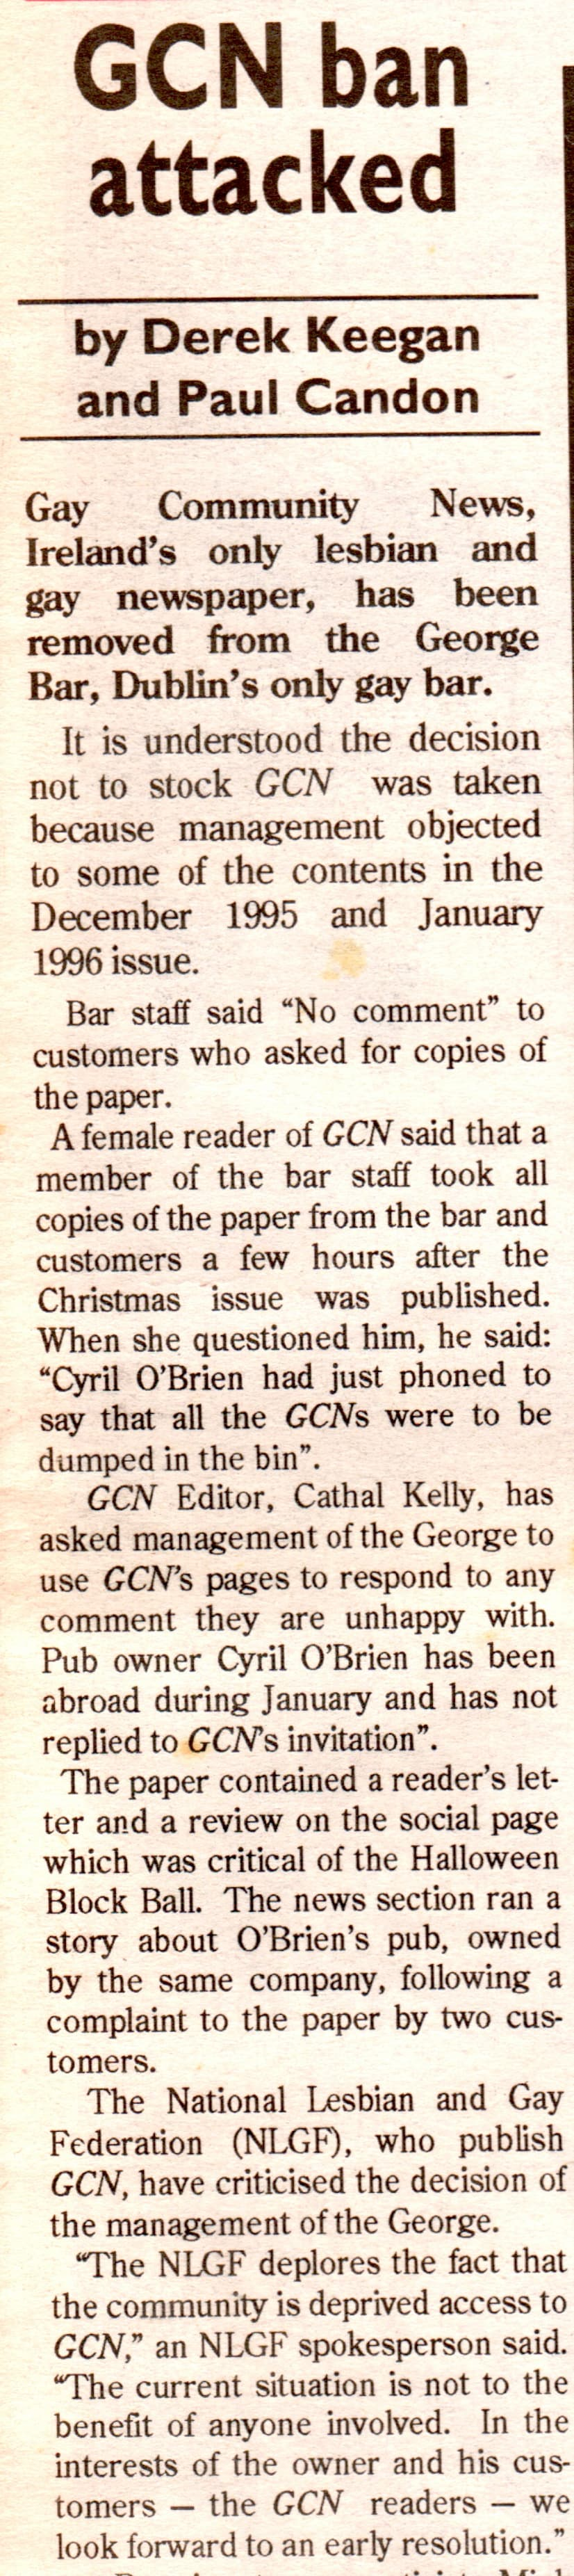 """Taking a look at the history of GCN: Exctract from a GCN article by  Derek Keegan and Paul Candon titled """"GCN ban attacked""""."""